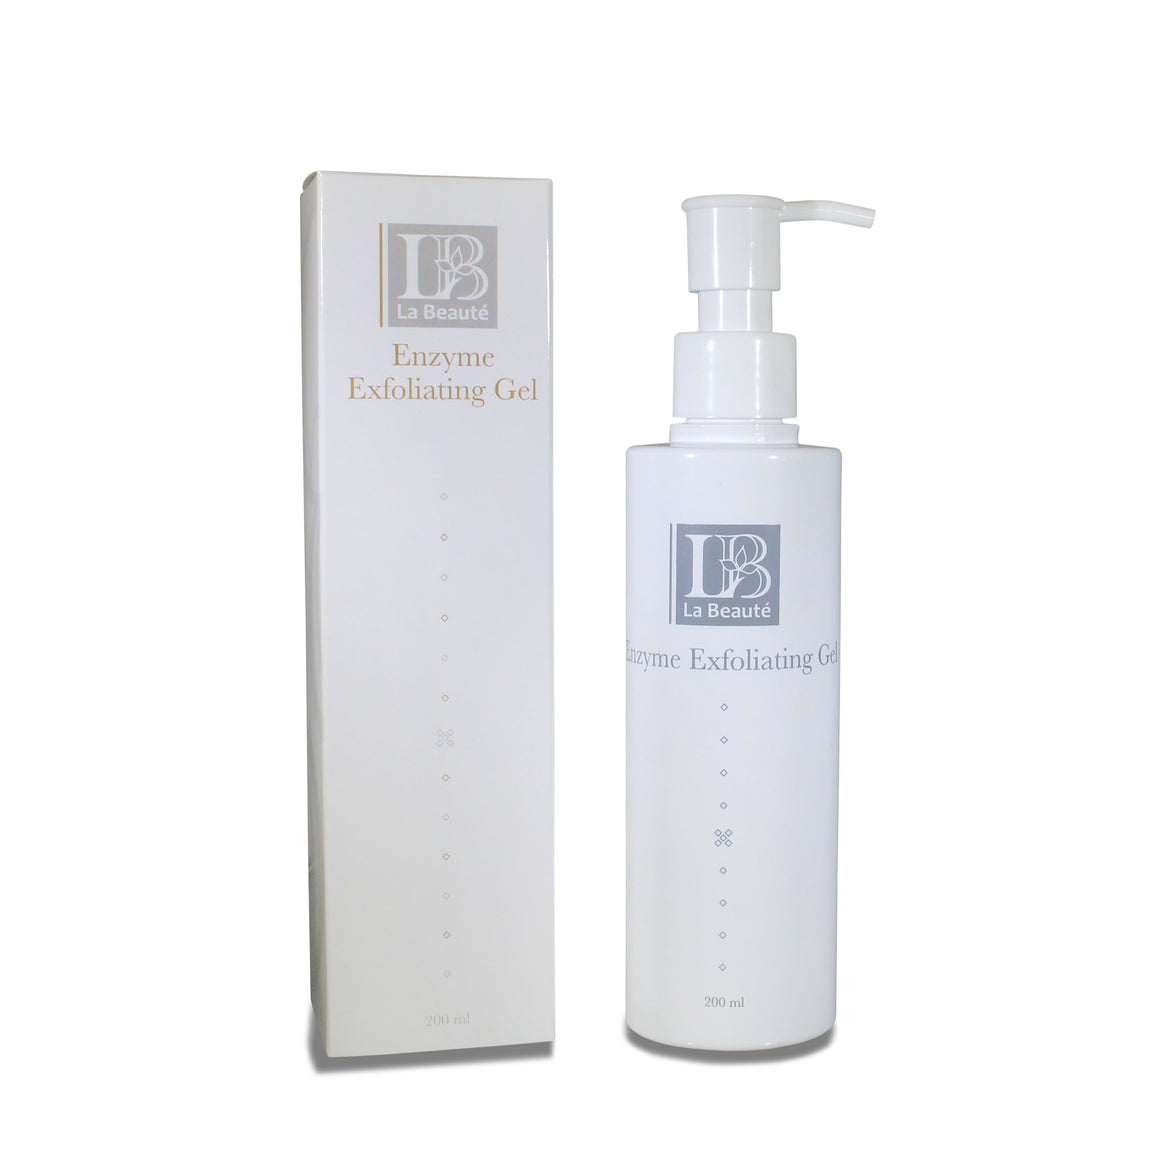 La Beaute -Enzyme Exfo Gel 200ml